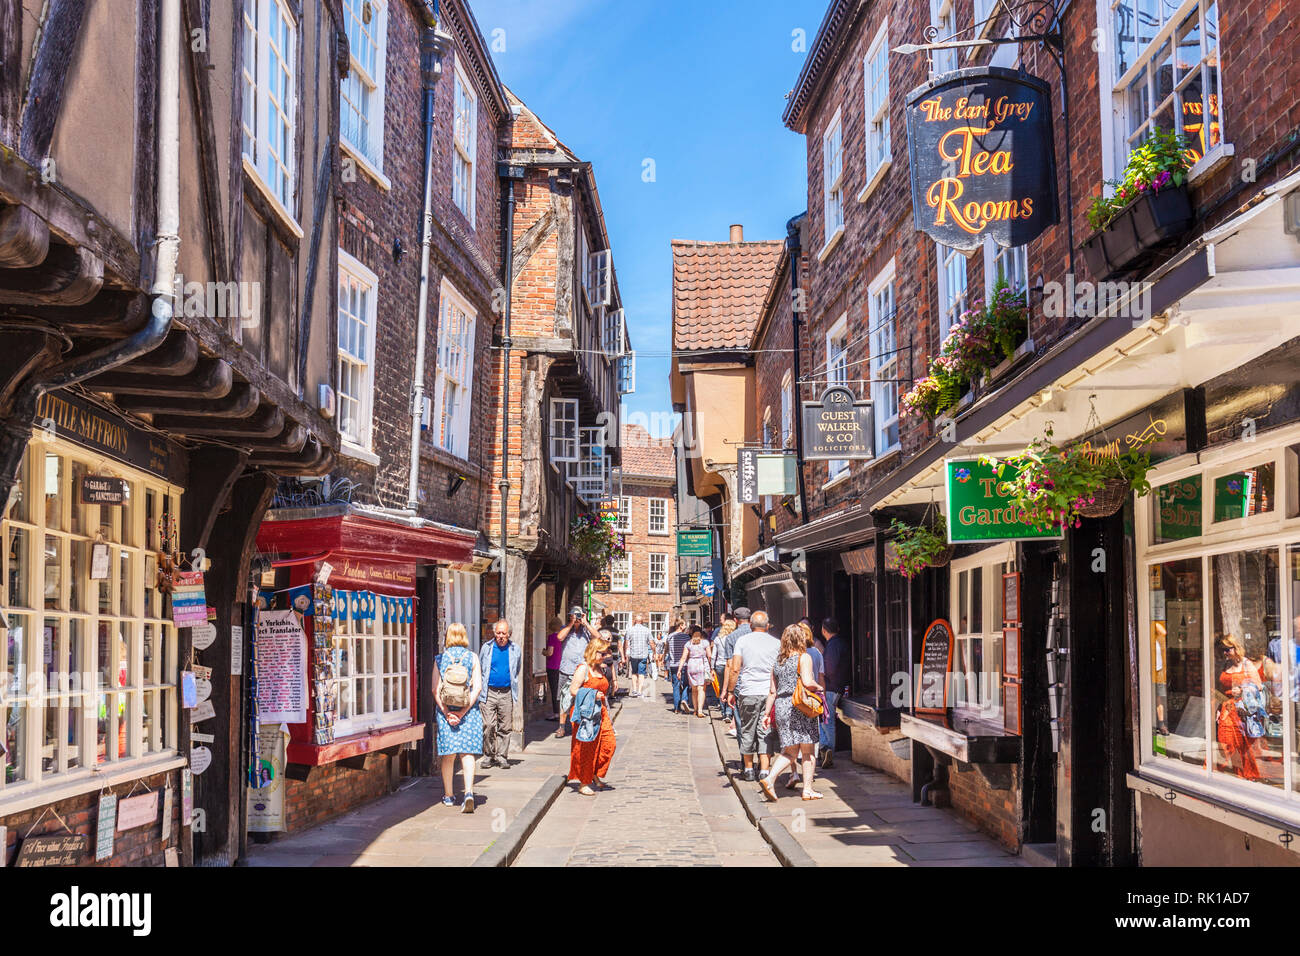 Tourists walking down the Shambles the narrow street of half-timbered old medieval buildings York Yorkshire England UK, GB Europe - Stock Image